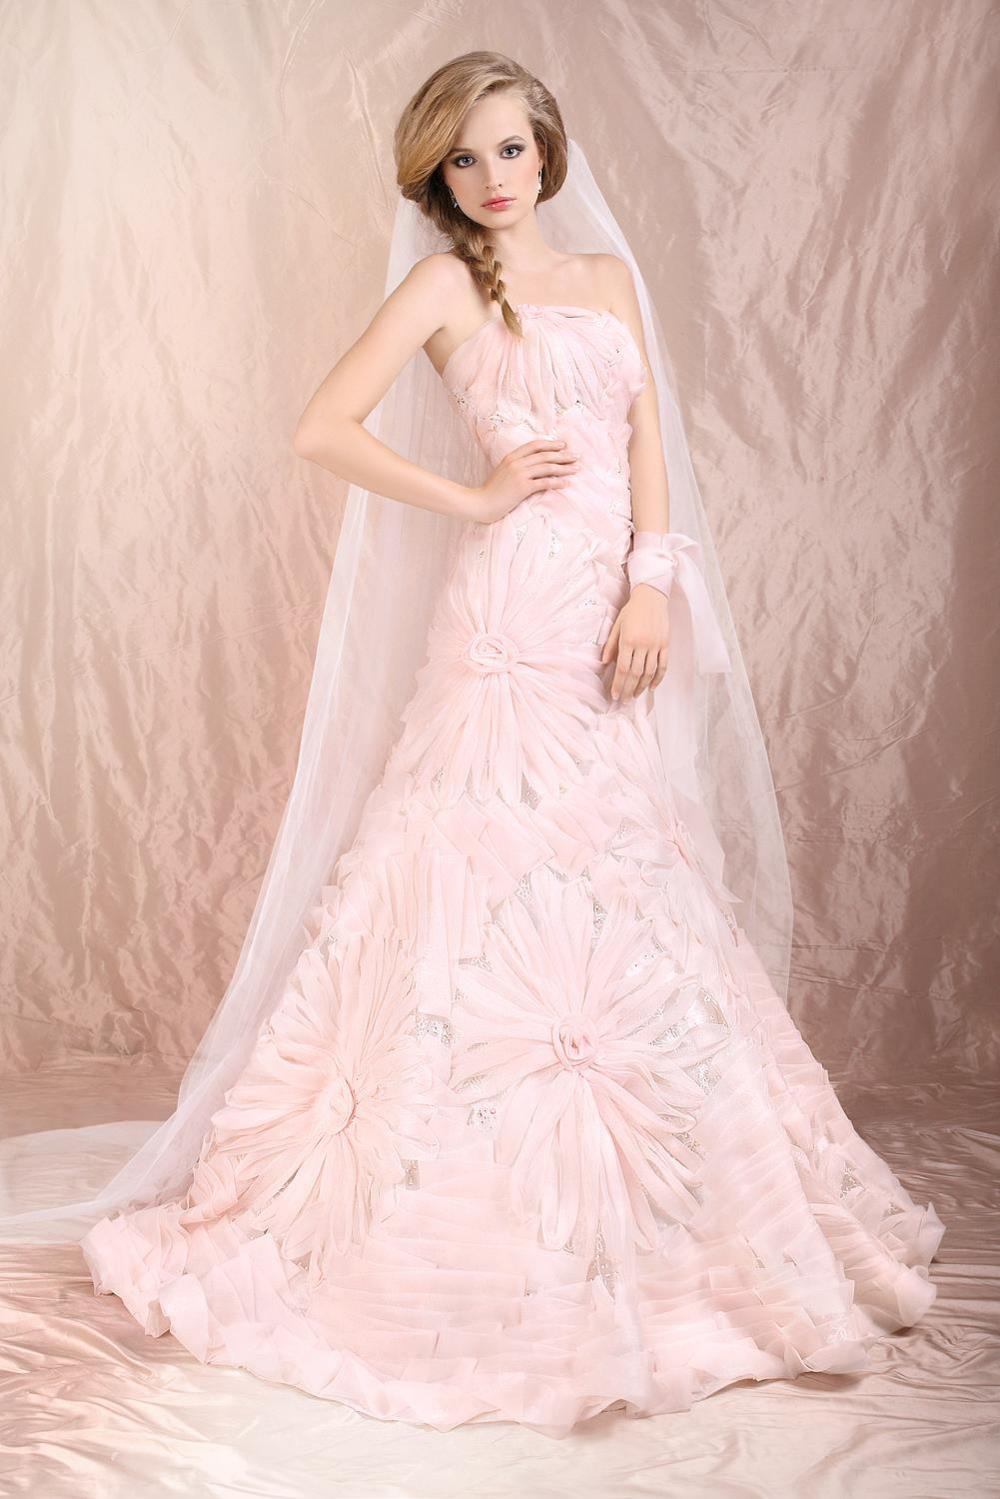 Blush Wedding Dress Dressedupgirl Com